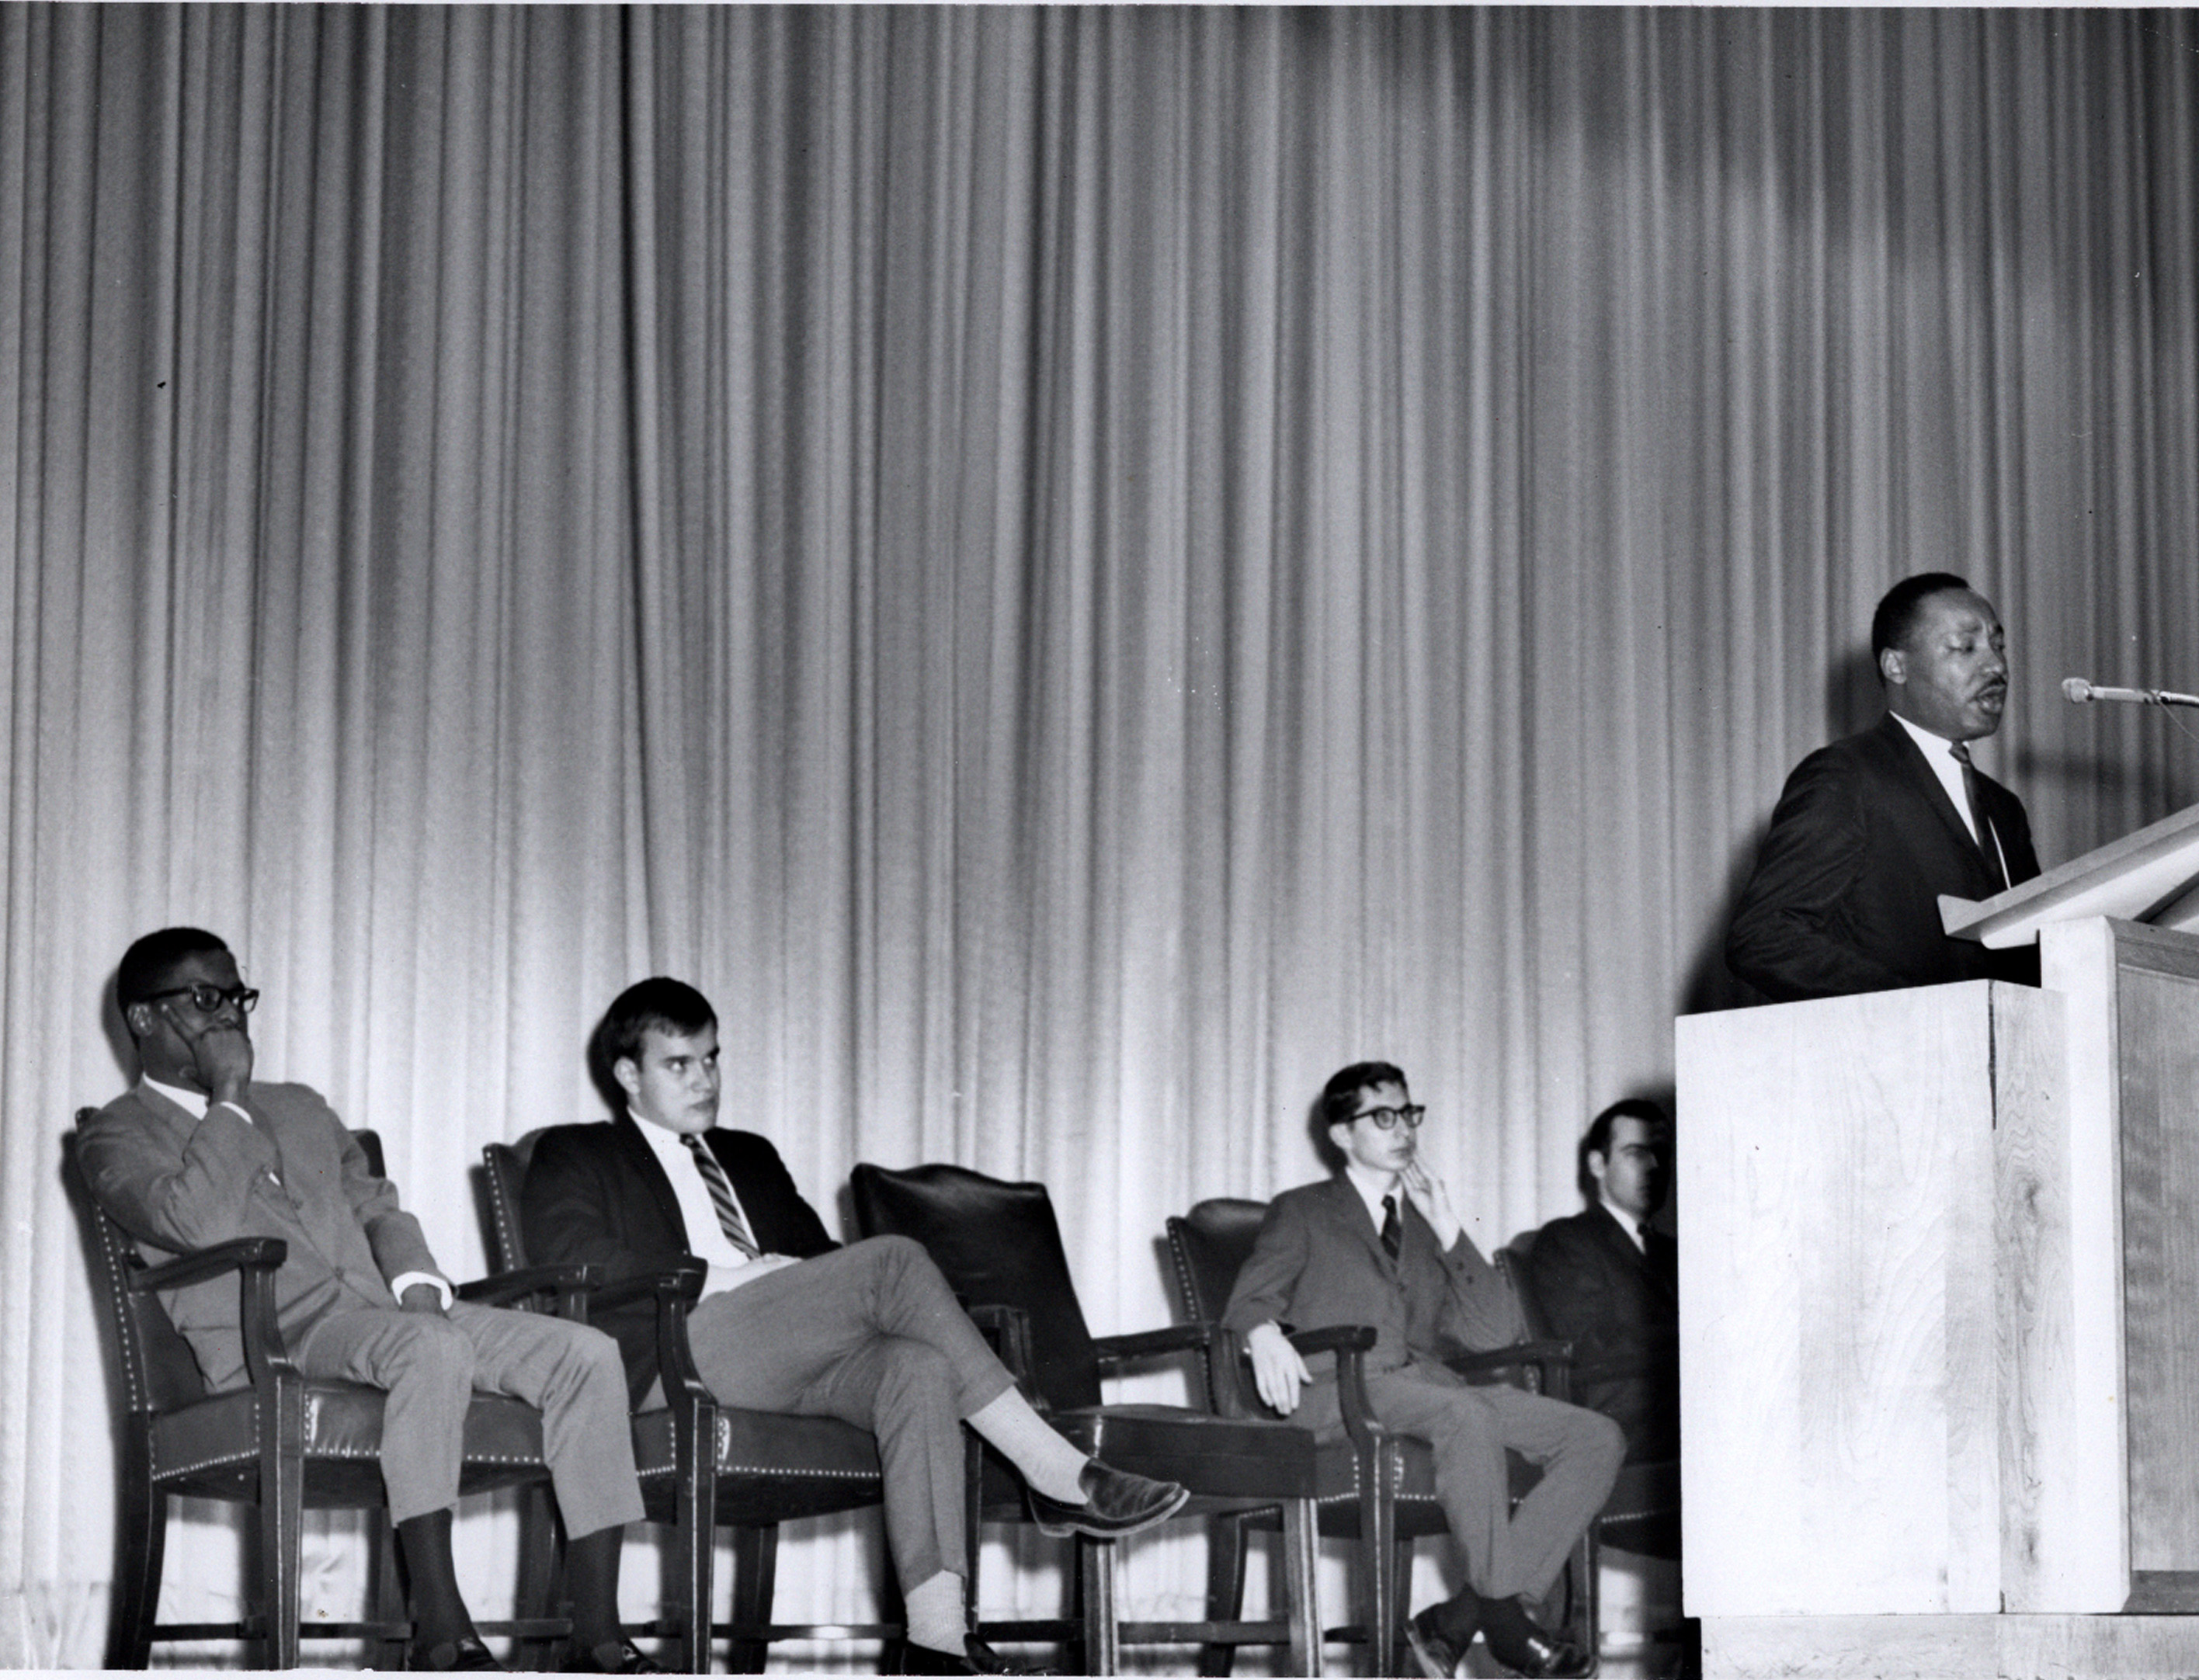 Martin Luther King Jr. at SMU on 17 March 1966